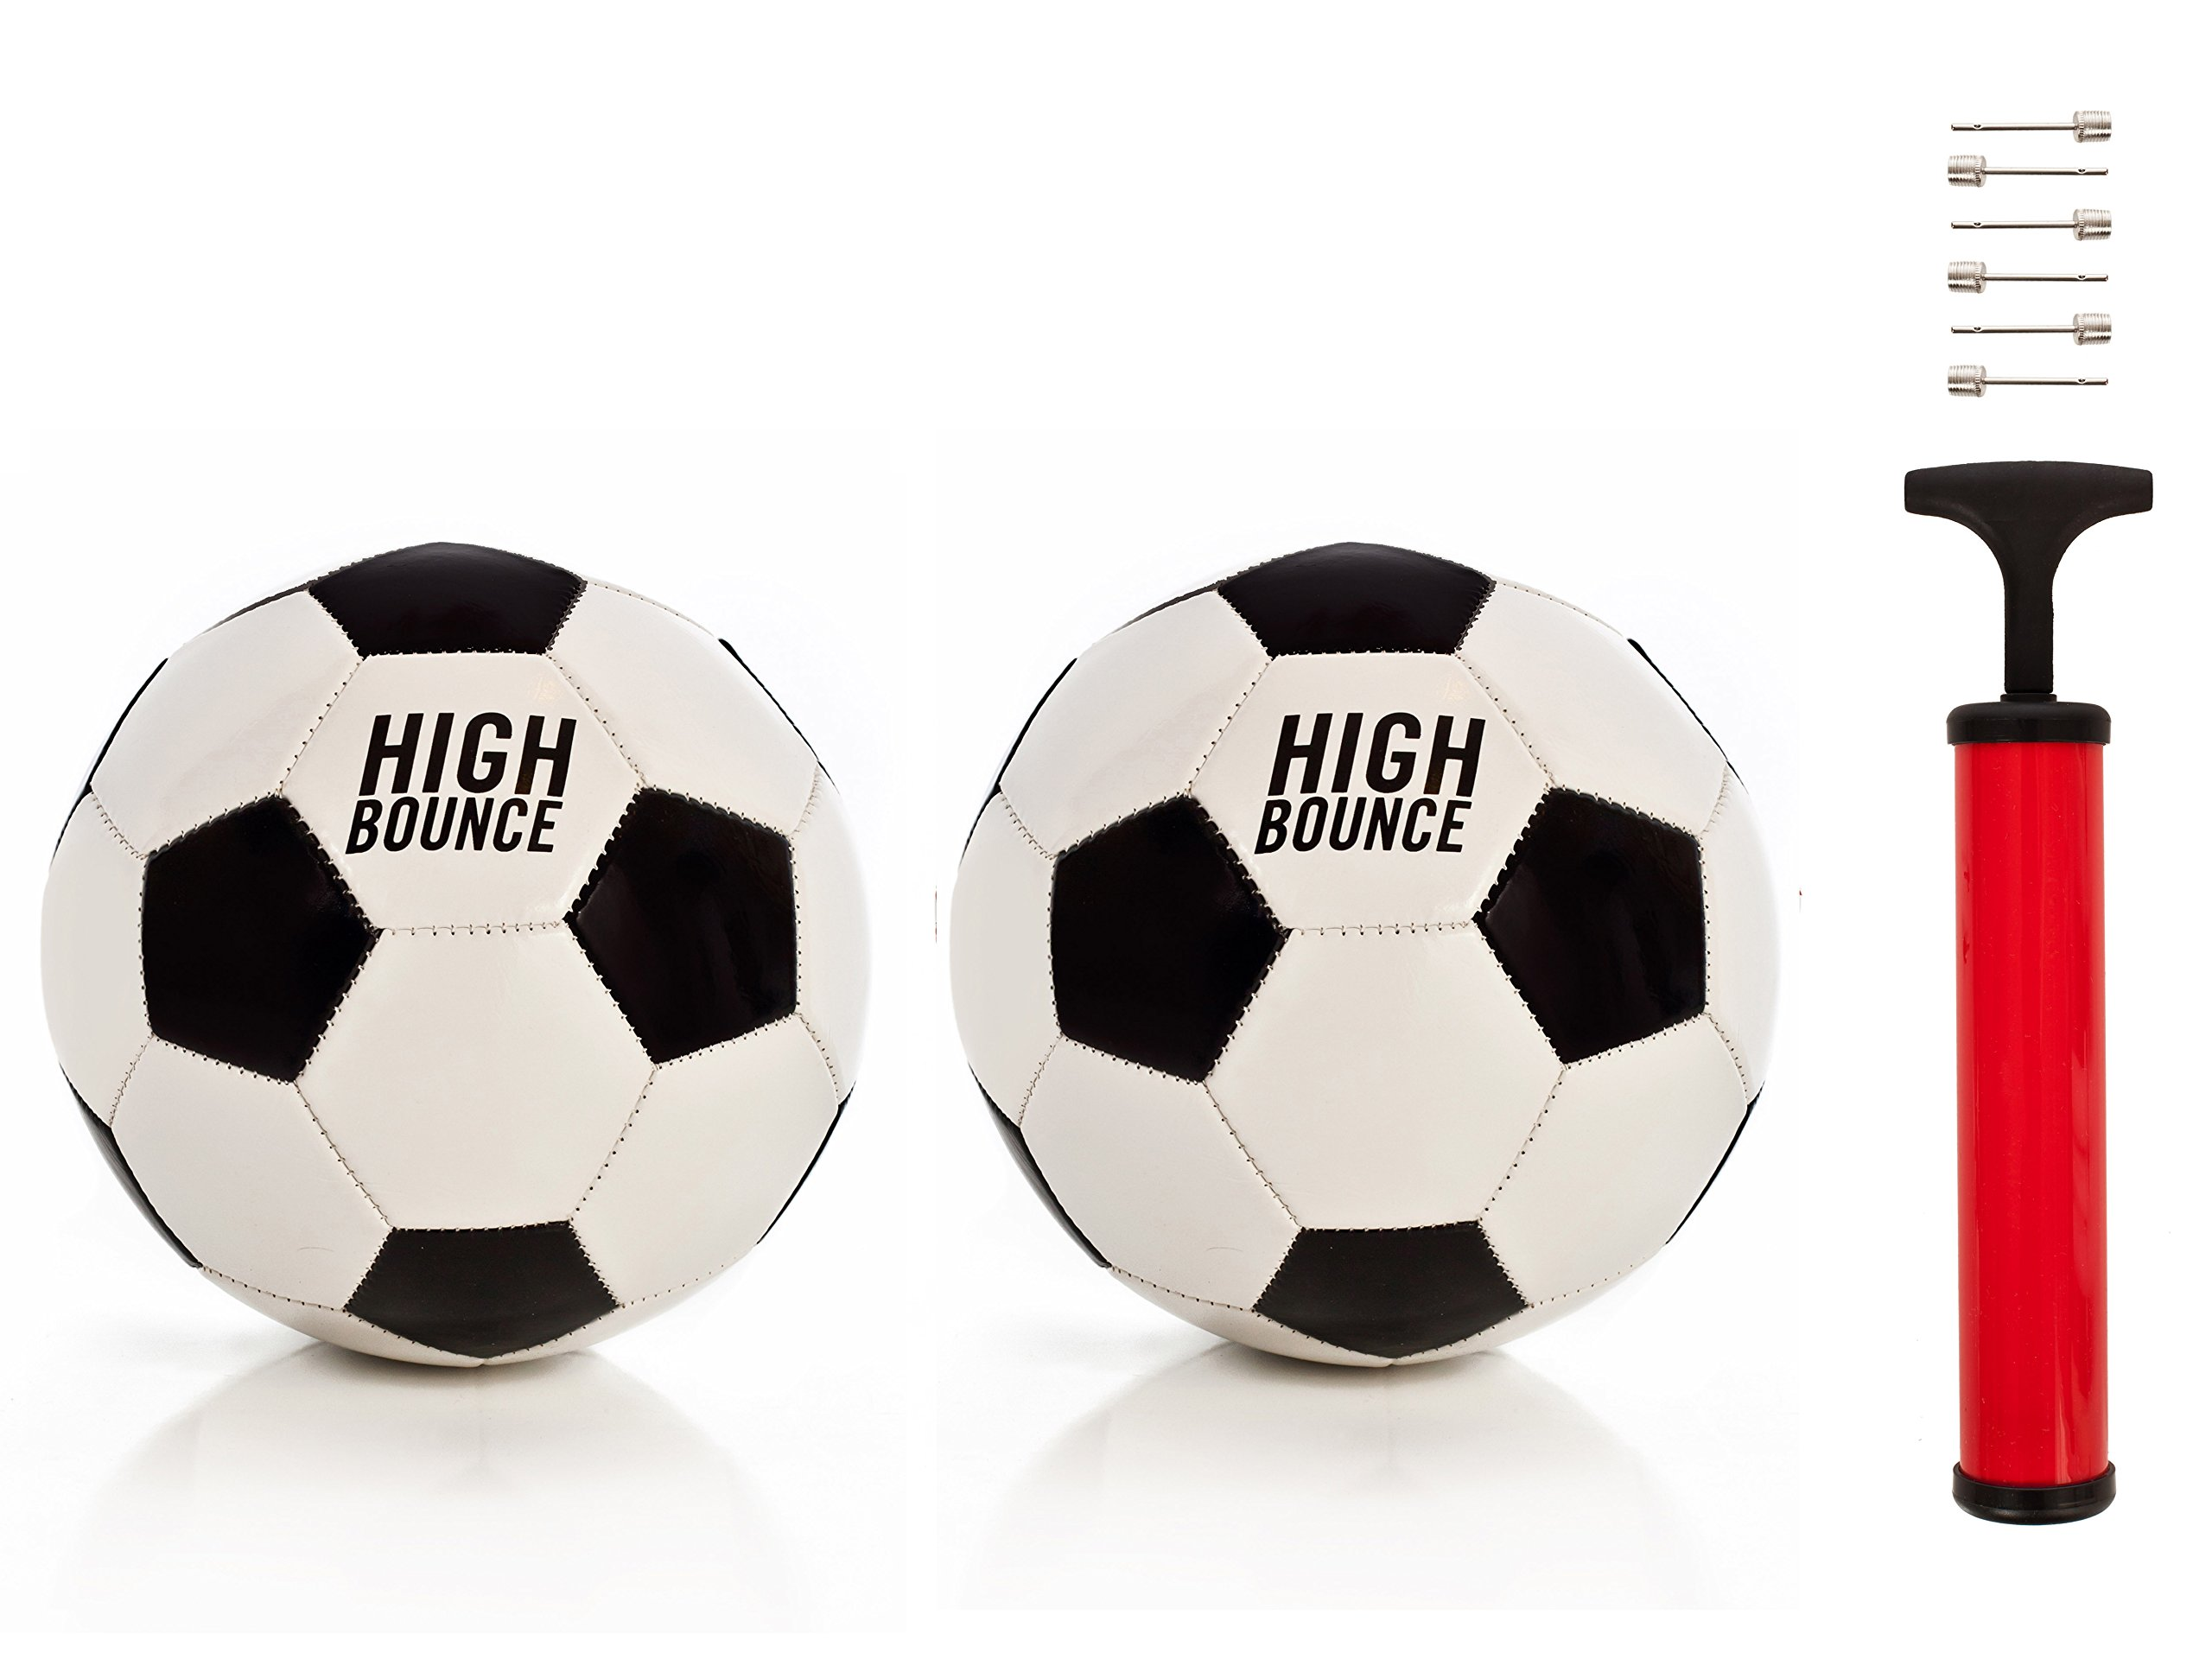 High Bounce Traditional Soccer Ball official size set of 2 including Pump & needles by High Bounce